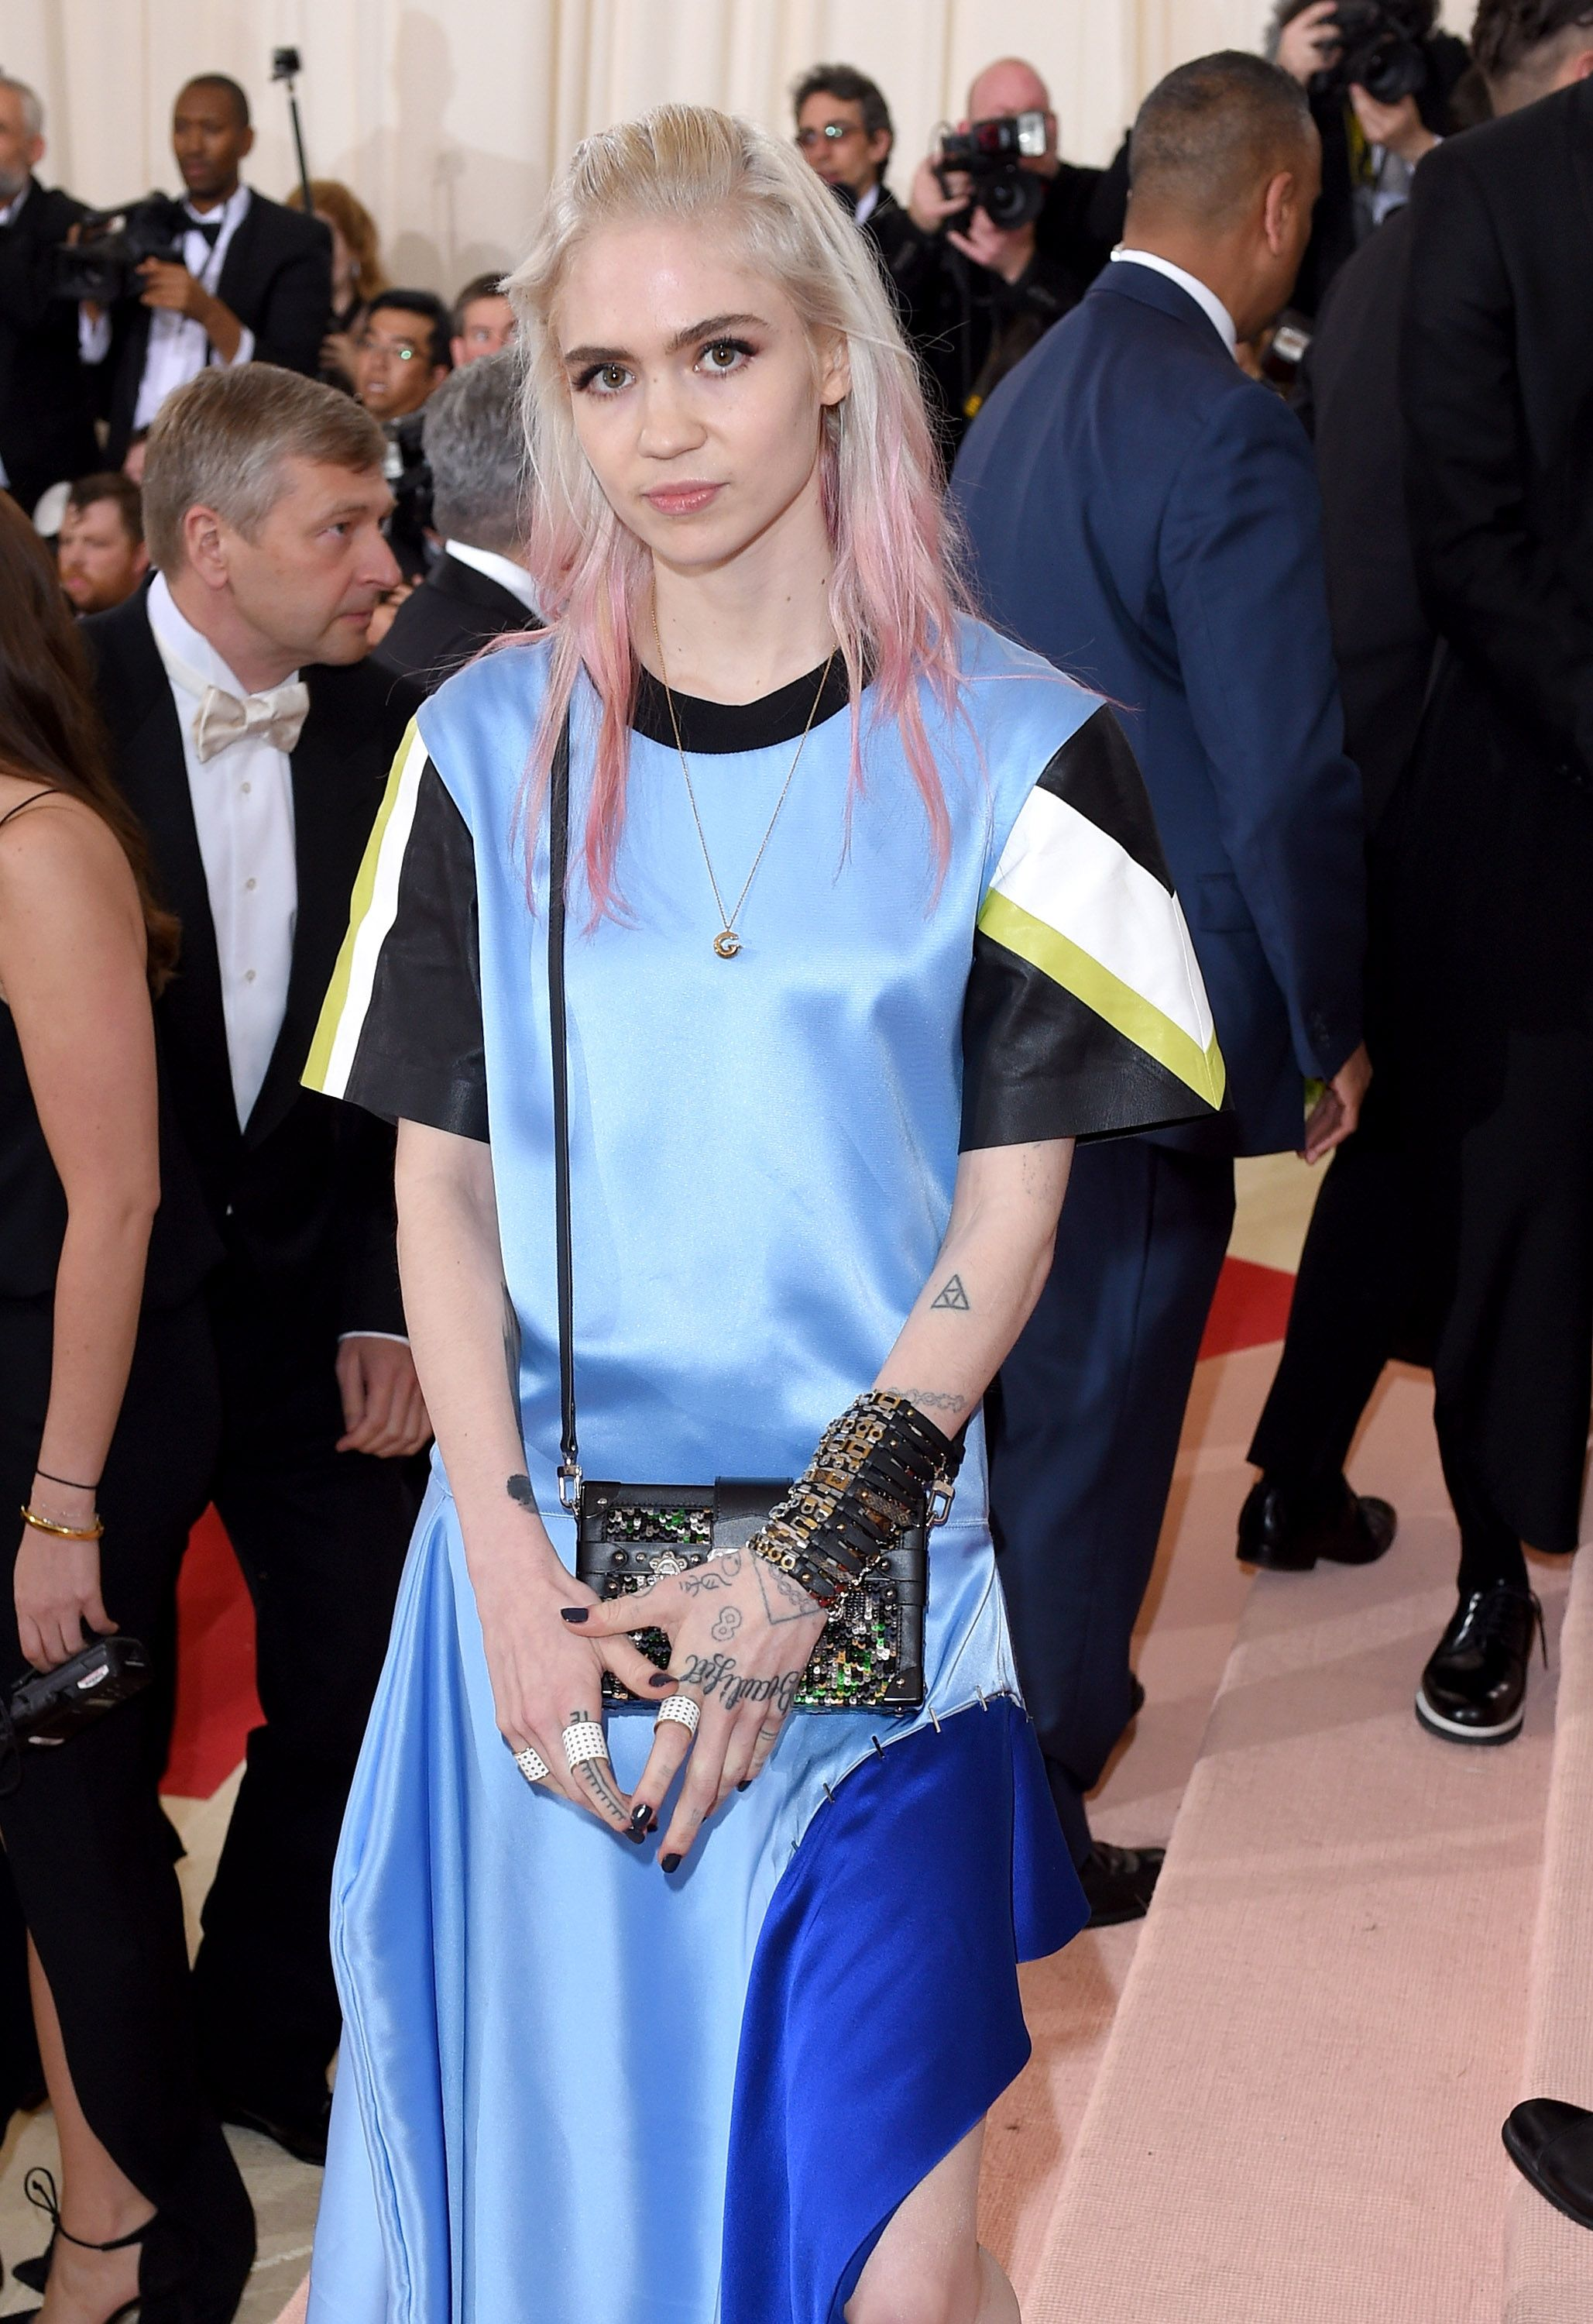 Who Is Grimes - How Did Elon Musk's New Girlfriend Grimes